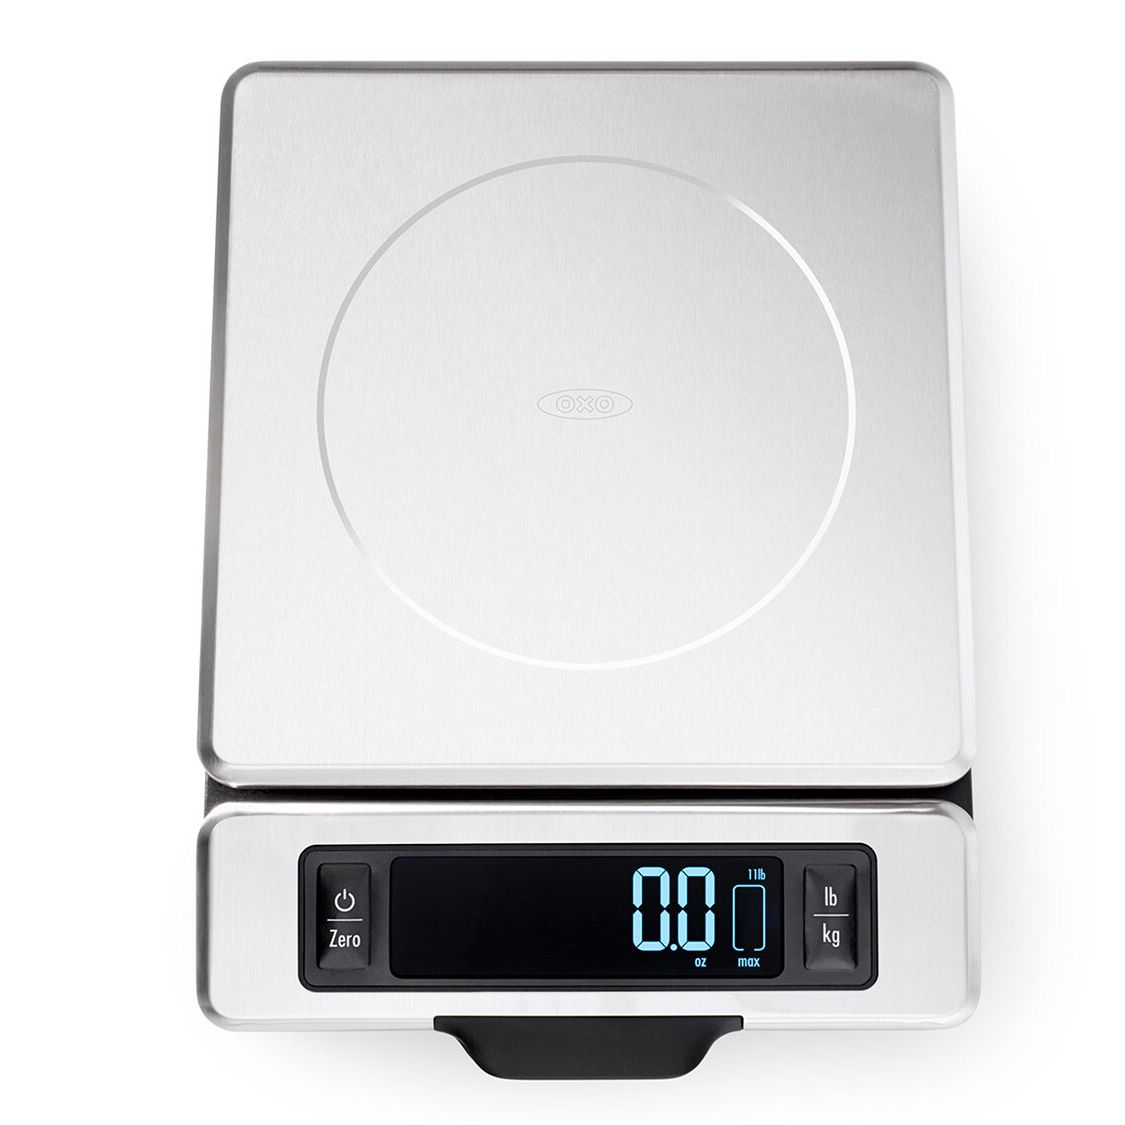 The Best Kitchen Scales Of 2021